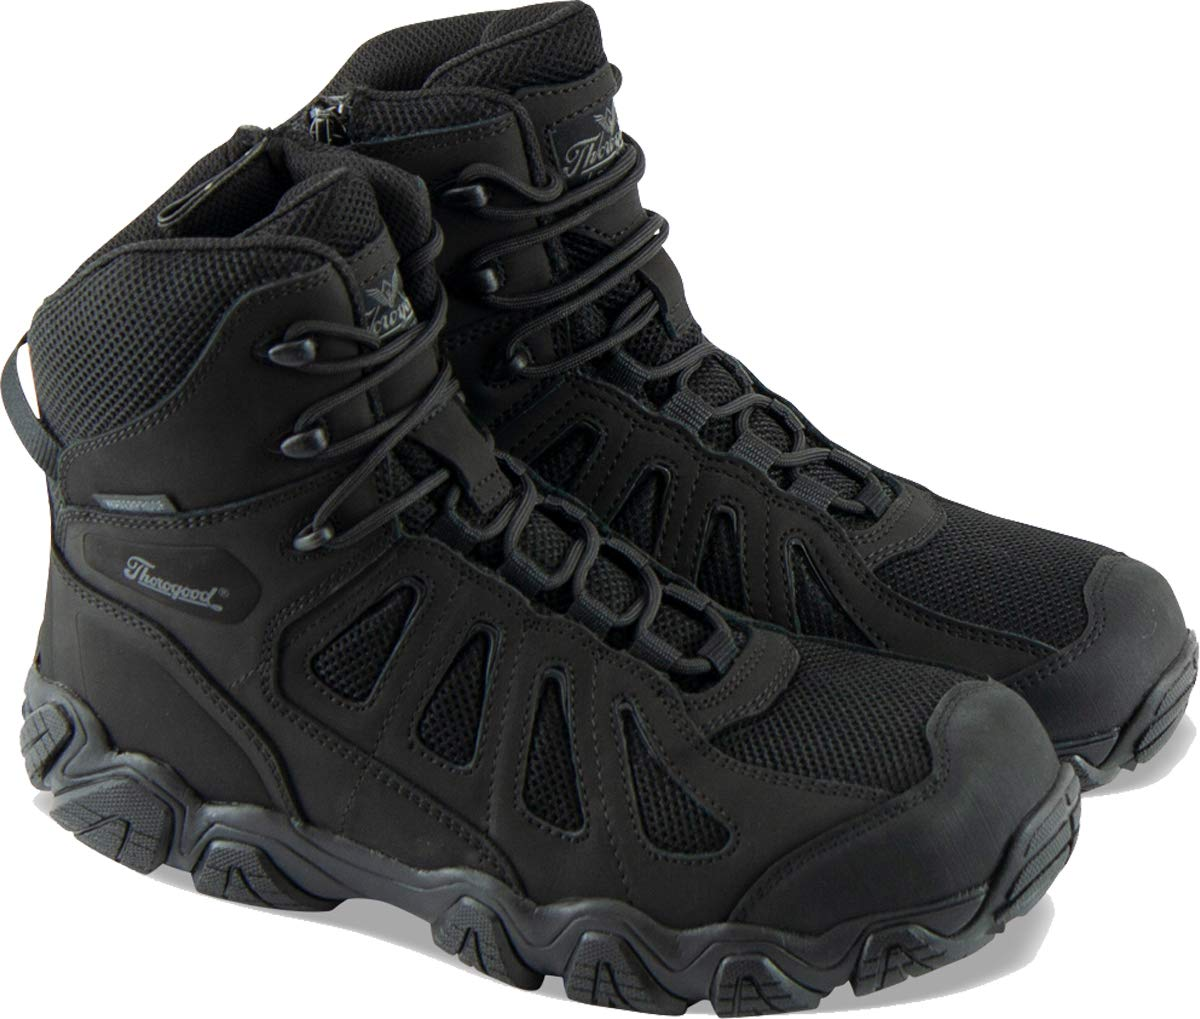 "Thorogood Men's Crosstrex Series - 6"" BBP Waterproof, Side Zip Composite Safety Toe Hiker Boot"